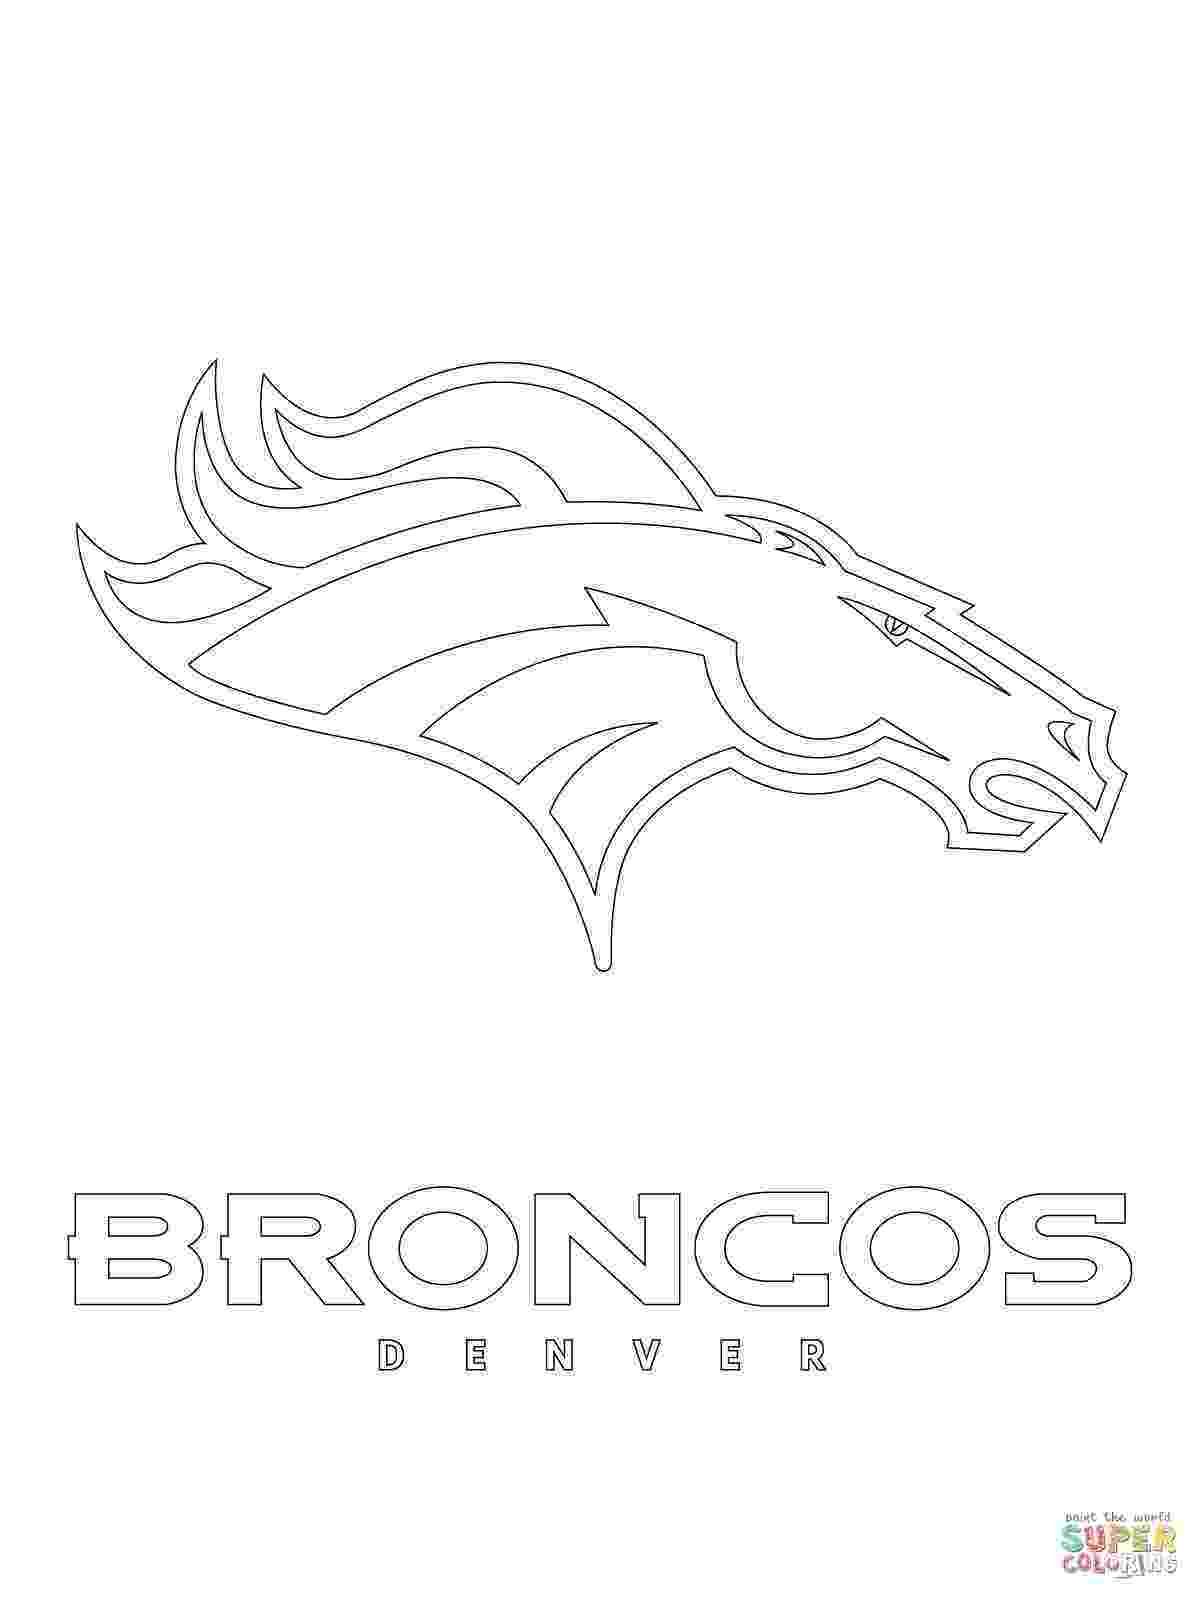 denver broncos coloring pages nfl logos coloring pages coloring pages to download and broncos denver pages coloring